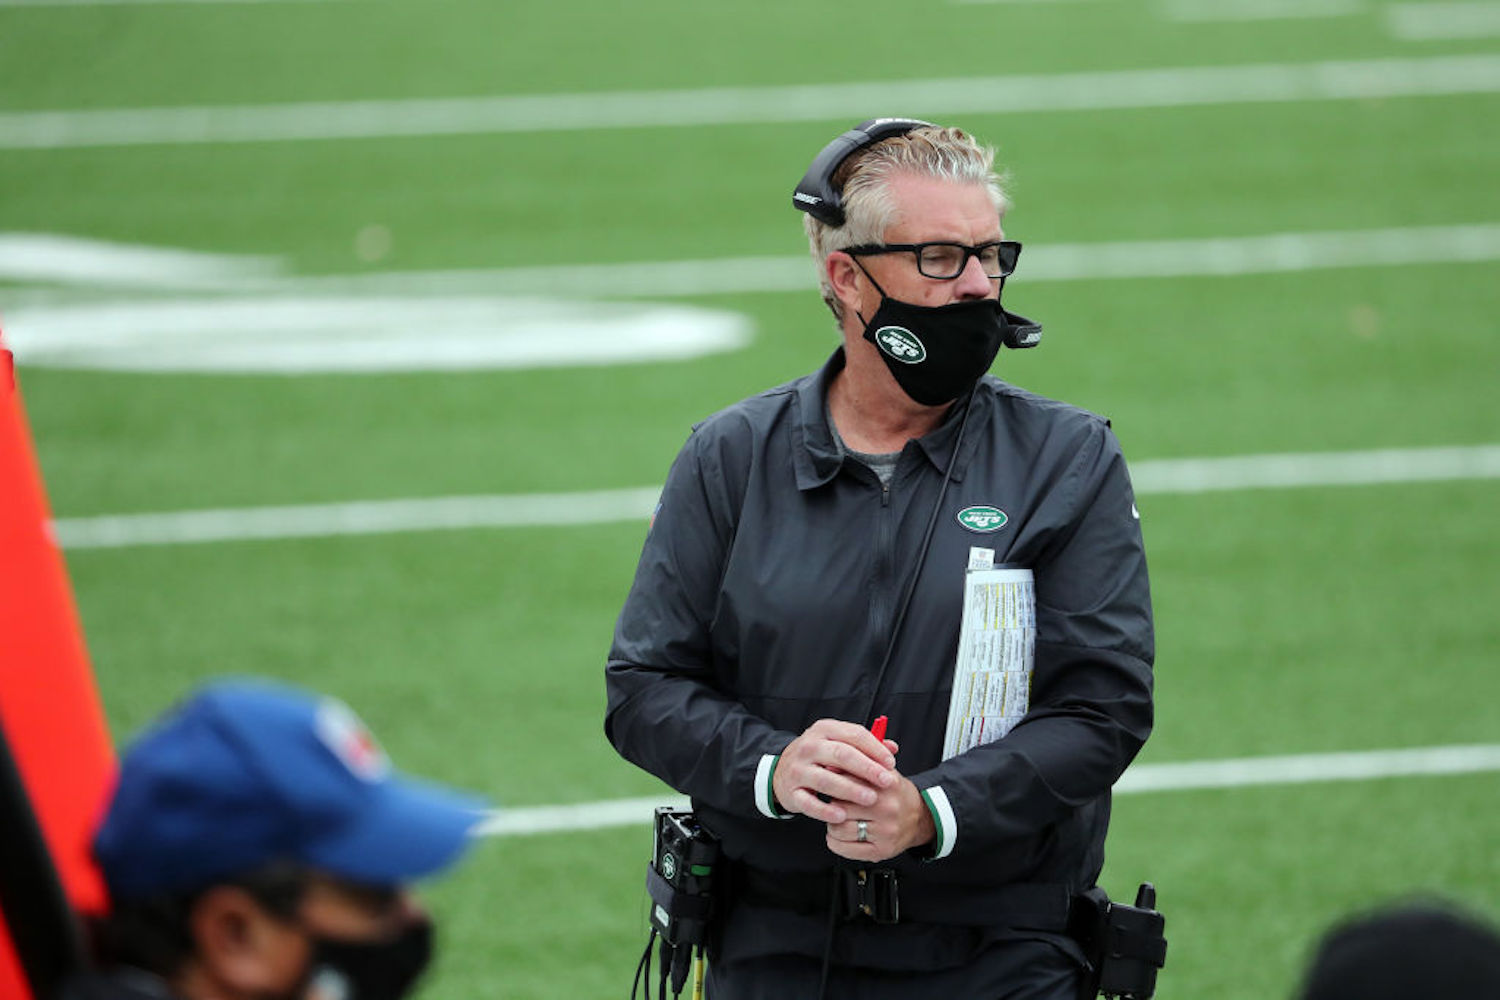 The Jets were on the cusp of their first victory of the year, but Gregg Williams dialed up a historically terrible play call to ensure the loss.